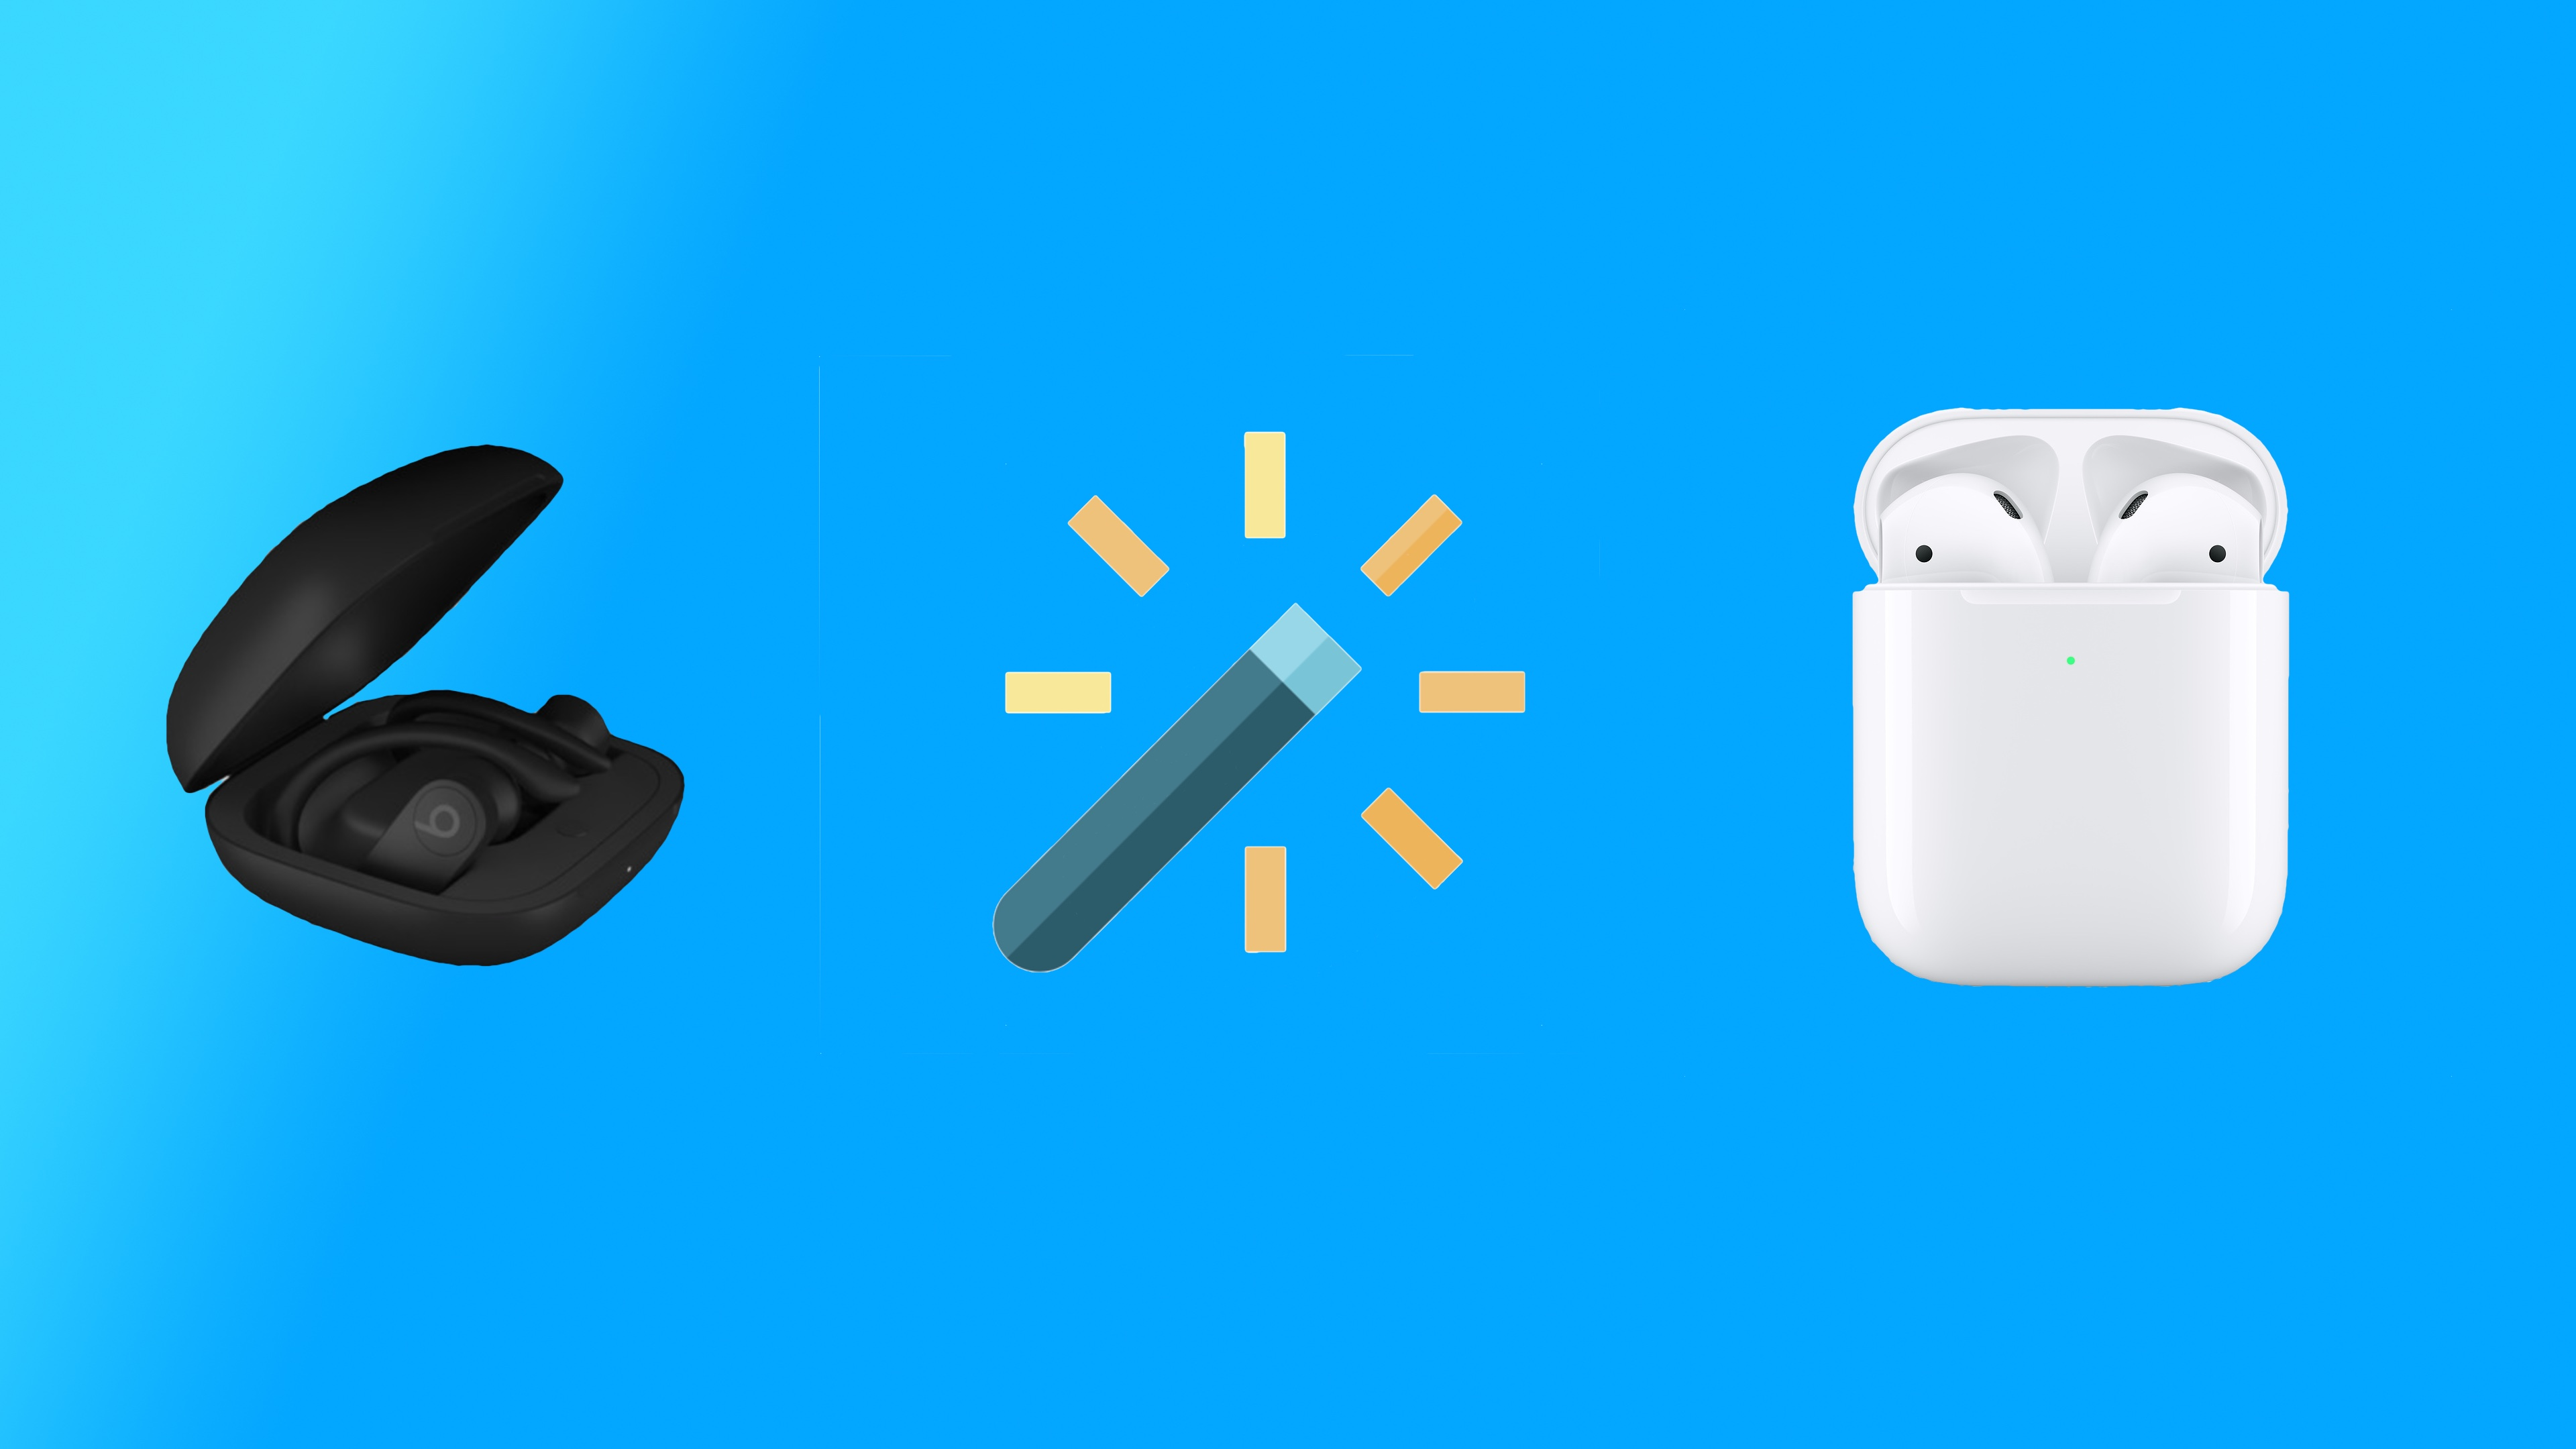 ToothFairy app for AirPods control on Mac updated with new icons and more ahead of Powerbeats Pro